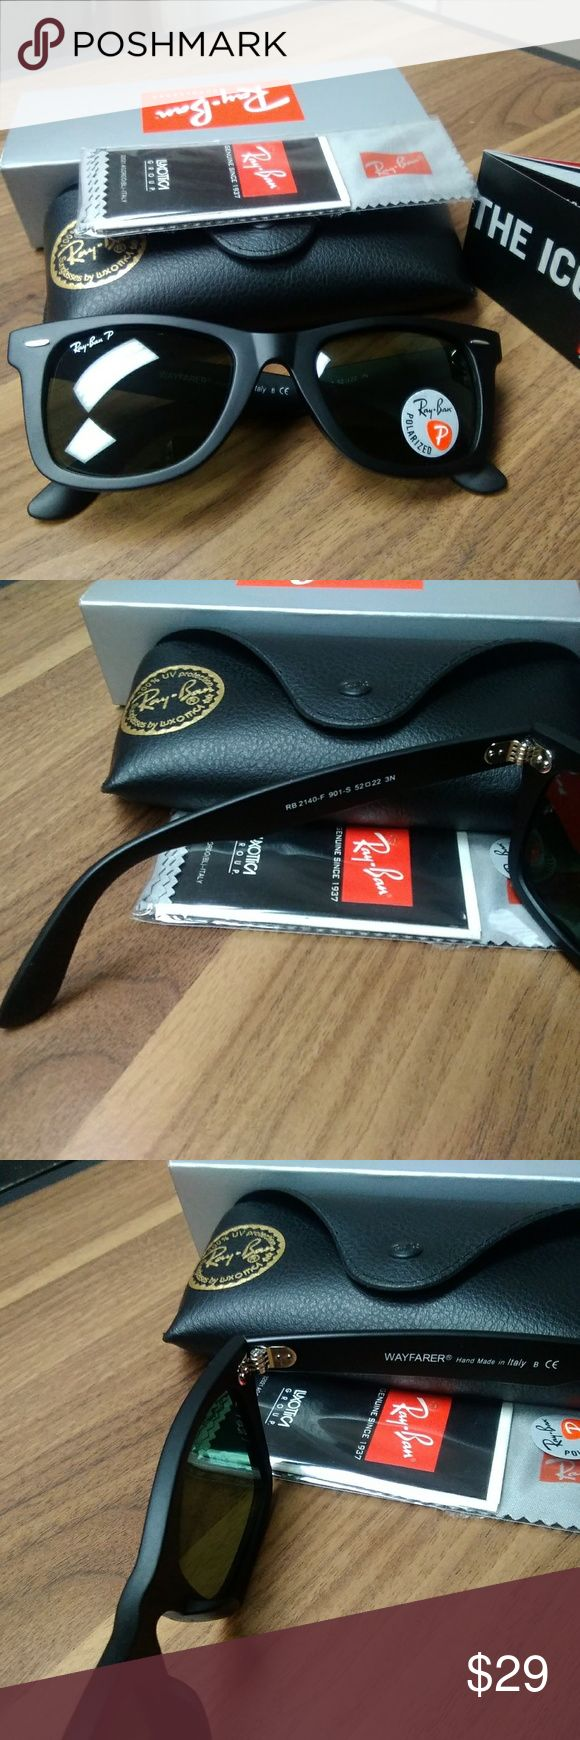 Polarized Ray-Ban Wayfarer sunglass.make good gift Polarized Ray-Ban Wayfarer sunglass.make good gift,will ship in time for Christmas, comes with package. Ray-Ban Accessories Sunglasses